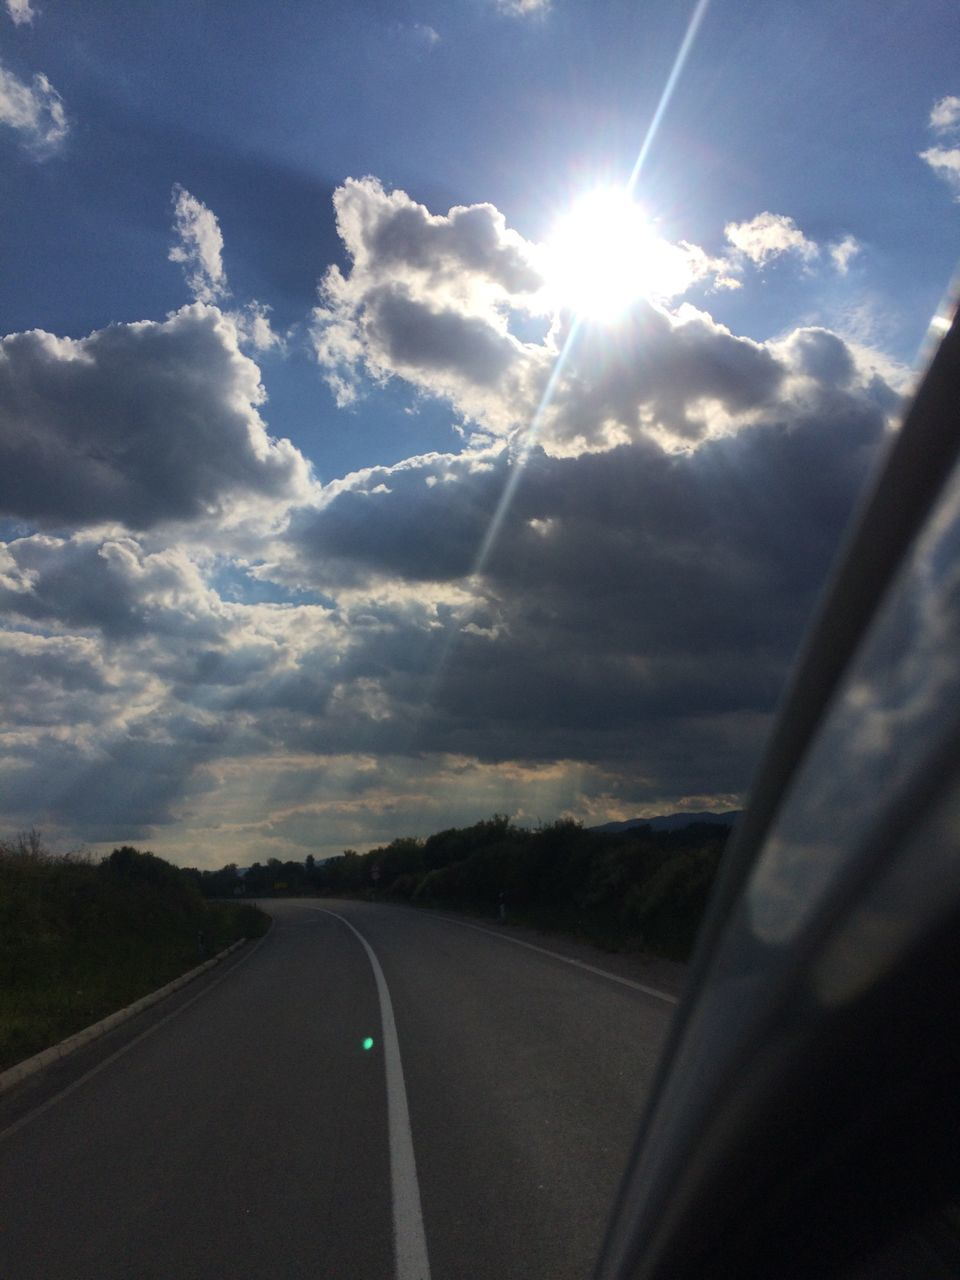 transportation, road, sun, lens flare, car, sunbeam, sky, sunlight, cloud - sky, the way forward, land vehicle, mode of transport, nature, no people, car interior, scenics, journey, sunset, day, car point of view, outdoors, beauty in nature, tree